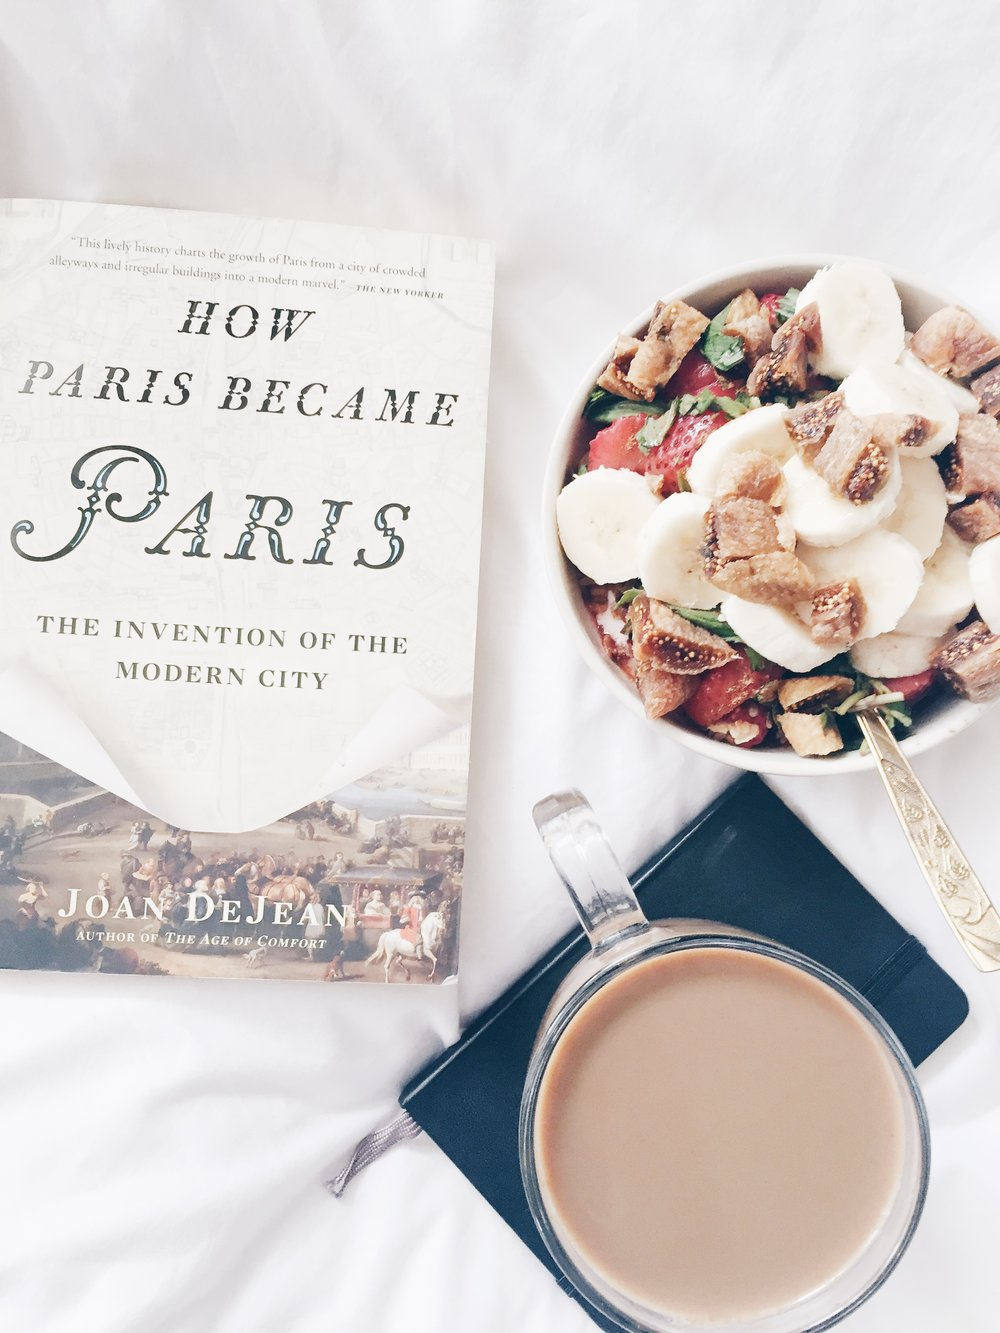 I can't wait to write about and photograph our time in Paris! - Make sure to follow me on Instagram so you don't miss a single photo!